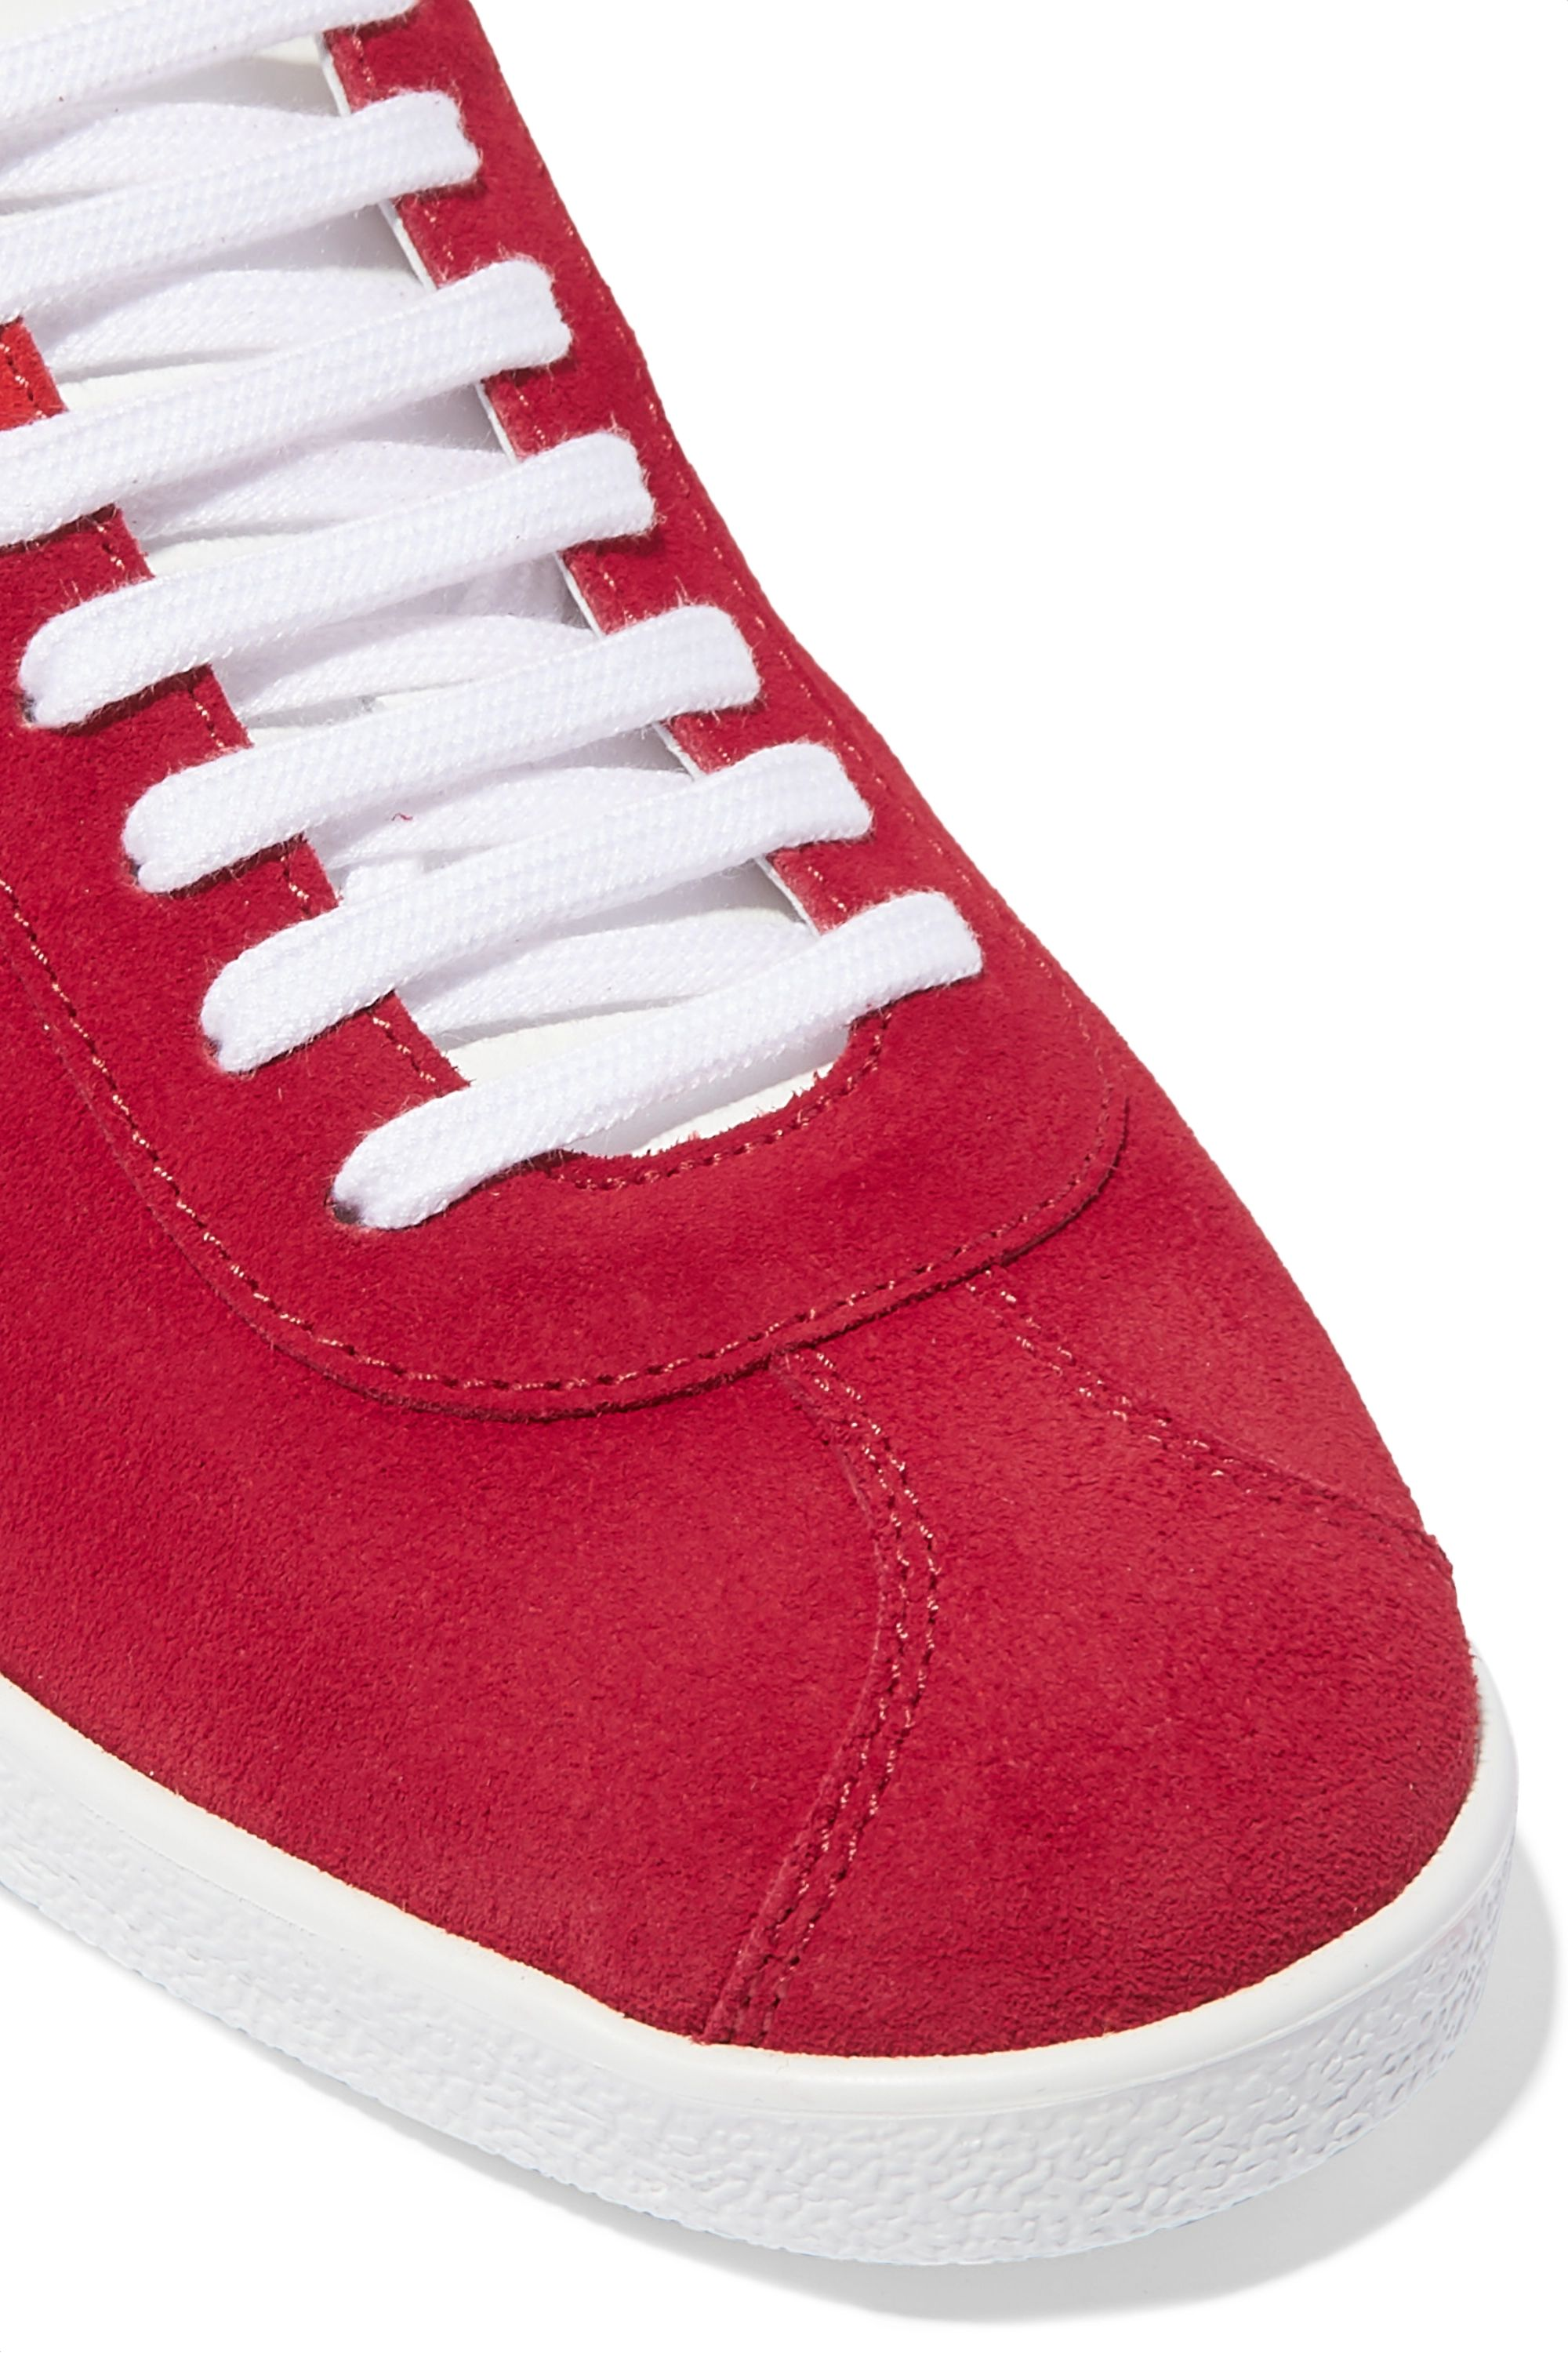 Red The A leather-trimmed suede